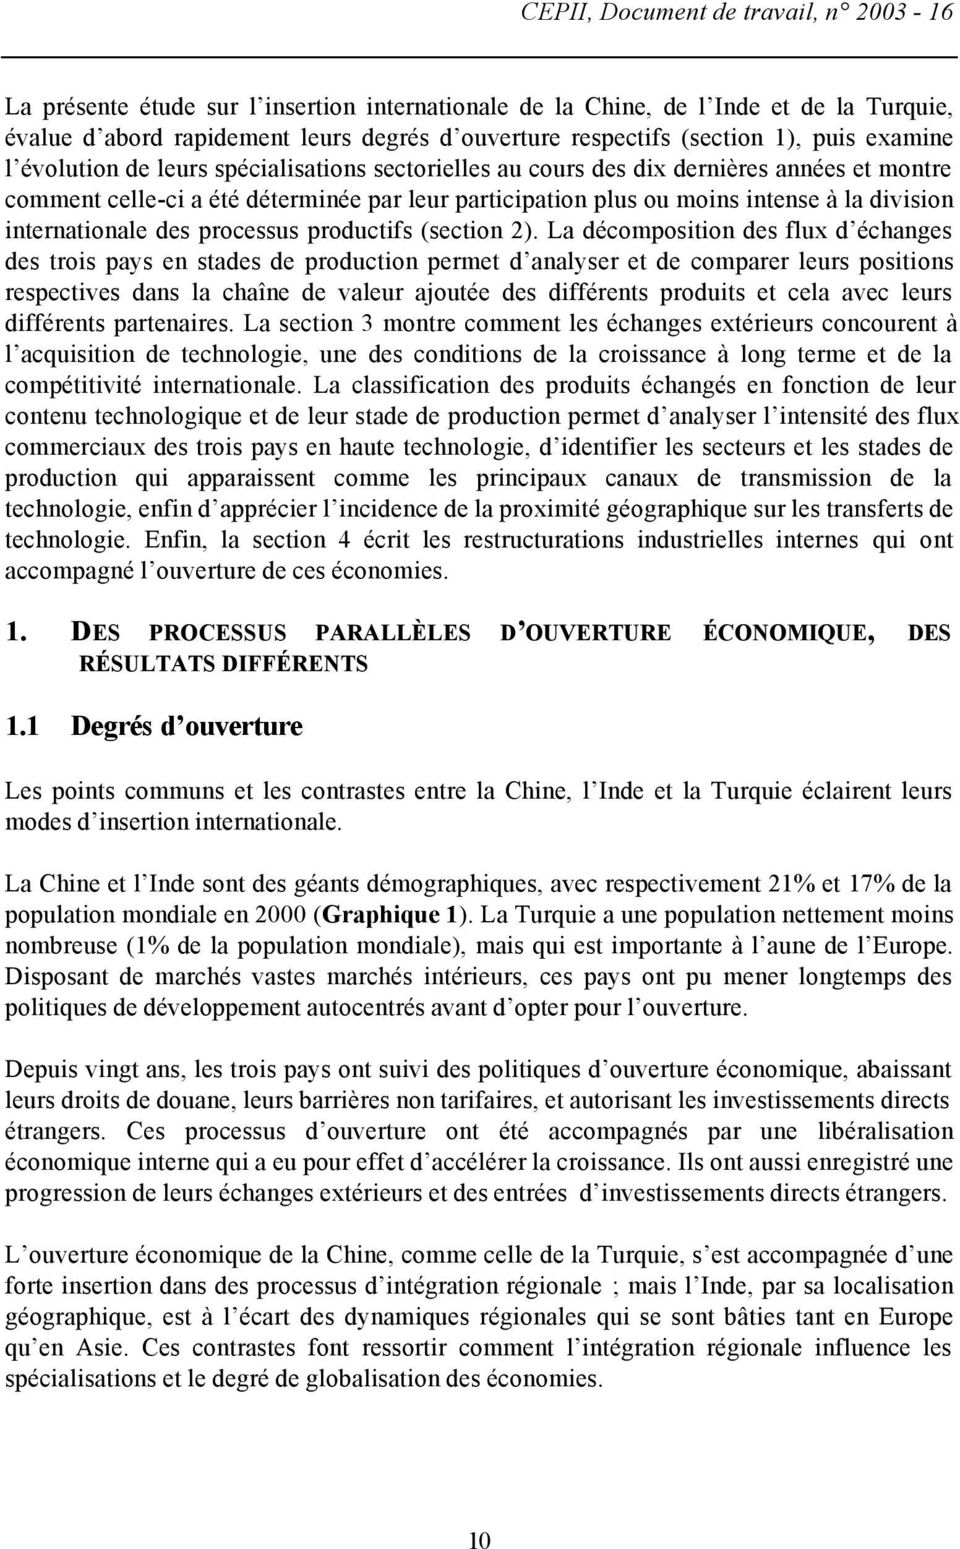 division internationale des processus productifs (section 2).